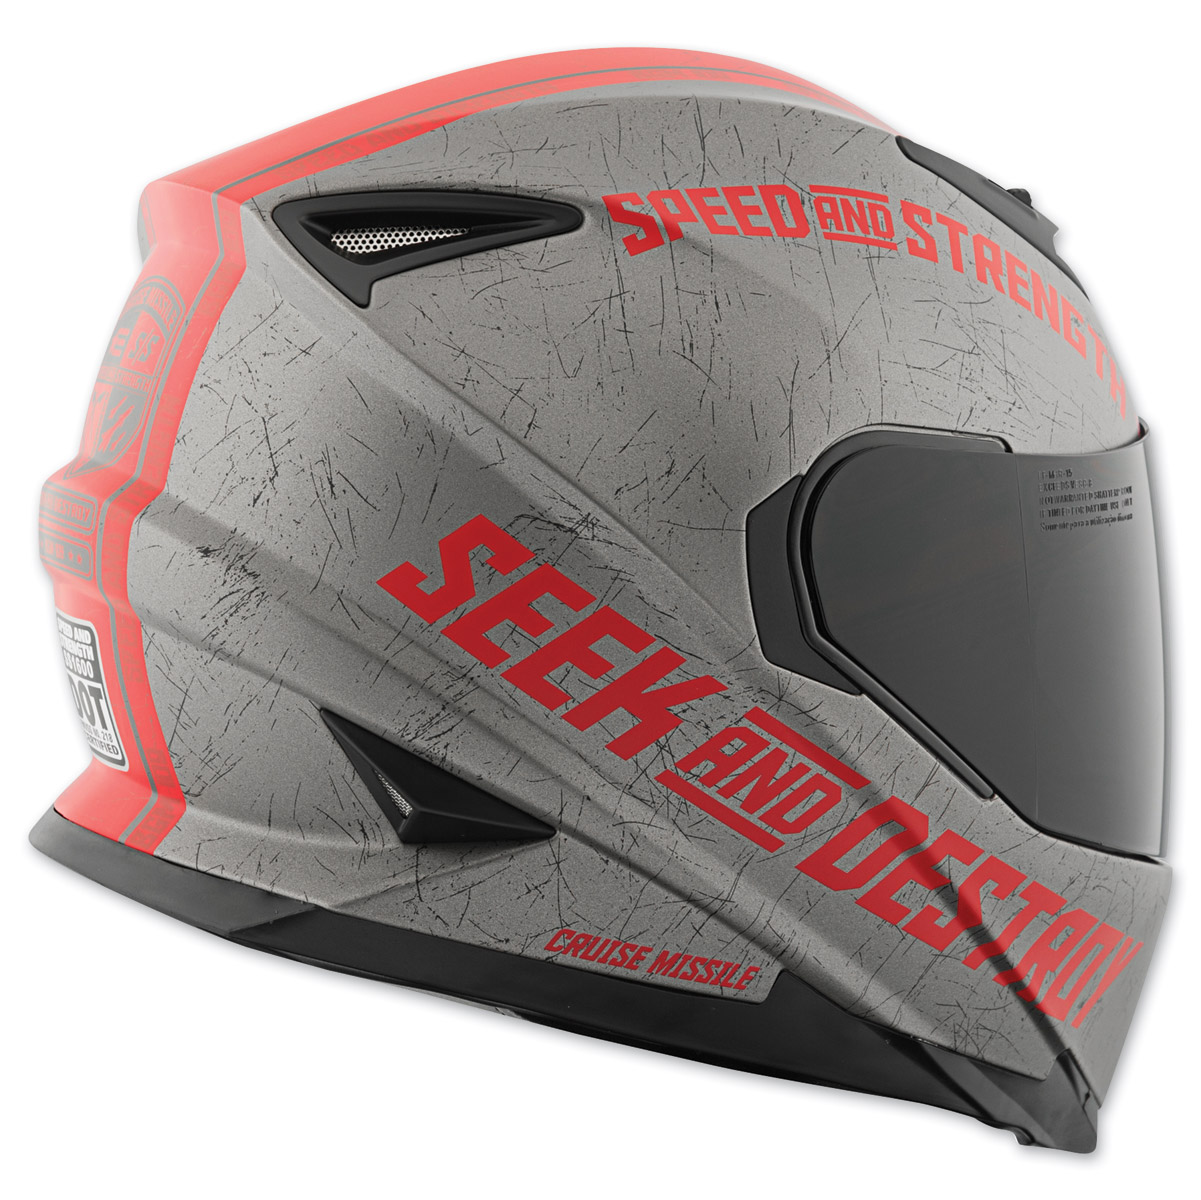 Speed And Strength Ss1600 Cruise Missile Red Full Face Helmet 212 366 J Amp P Cycles